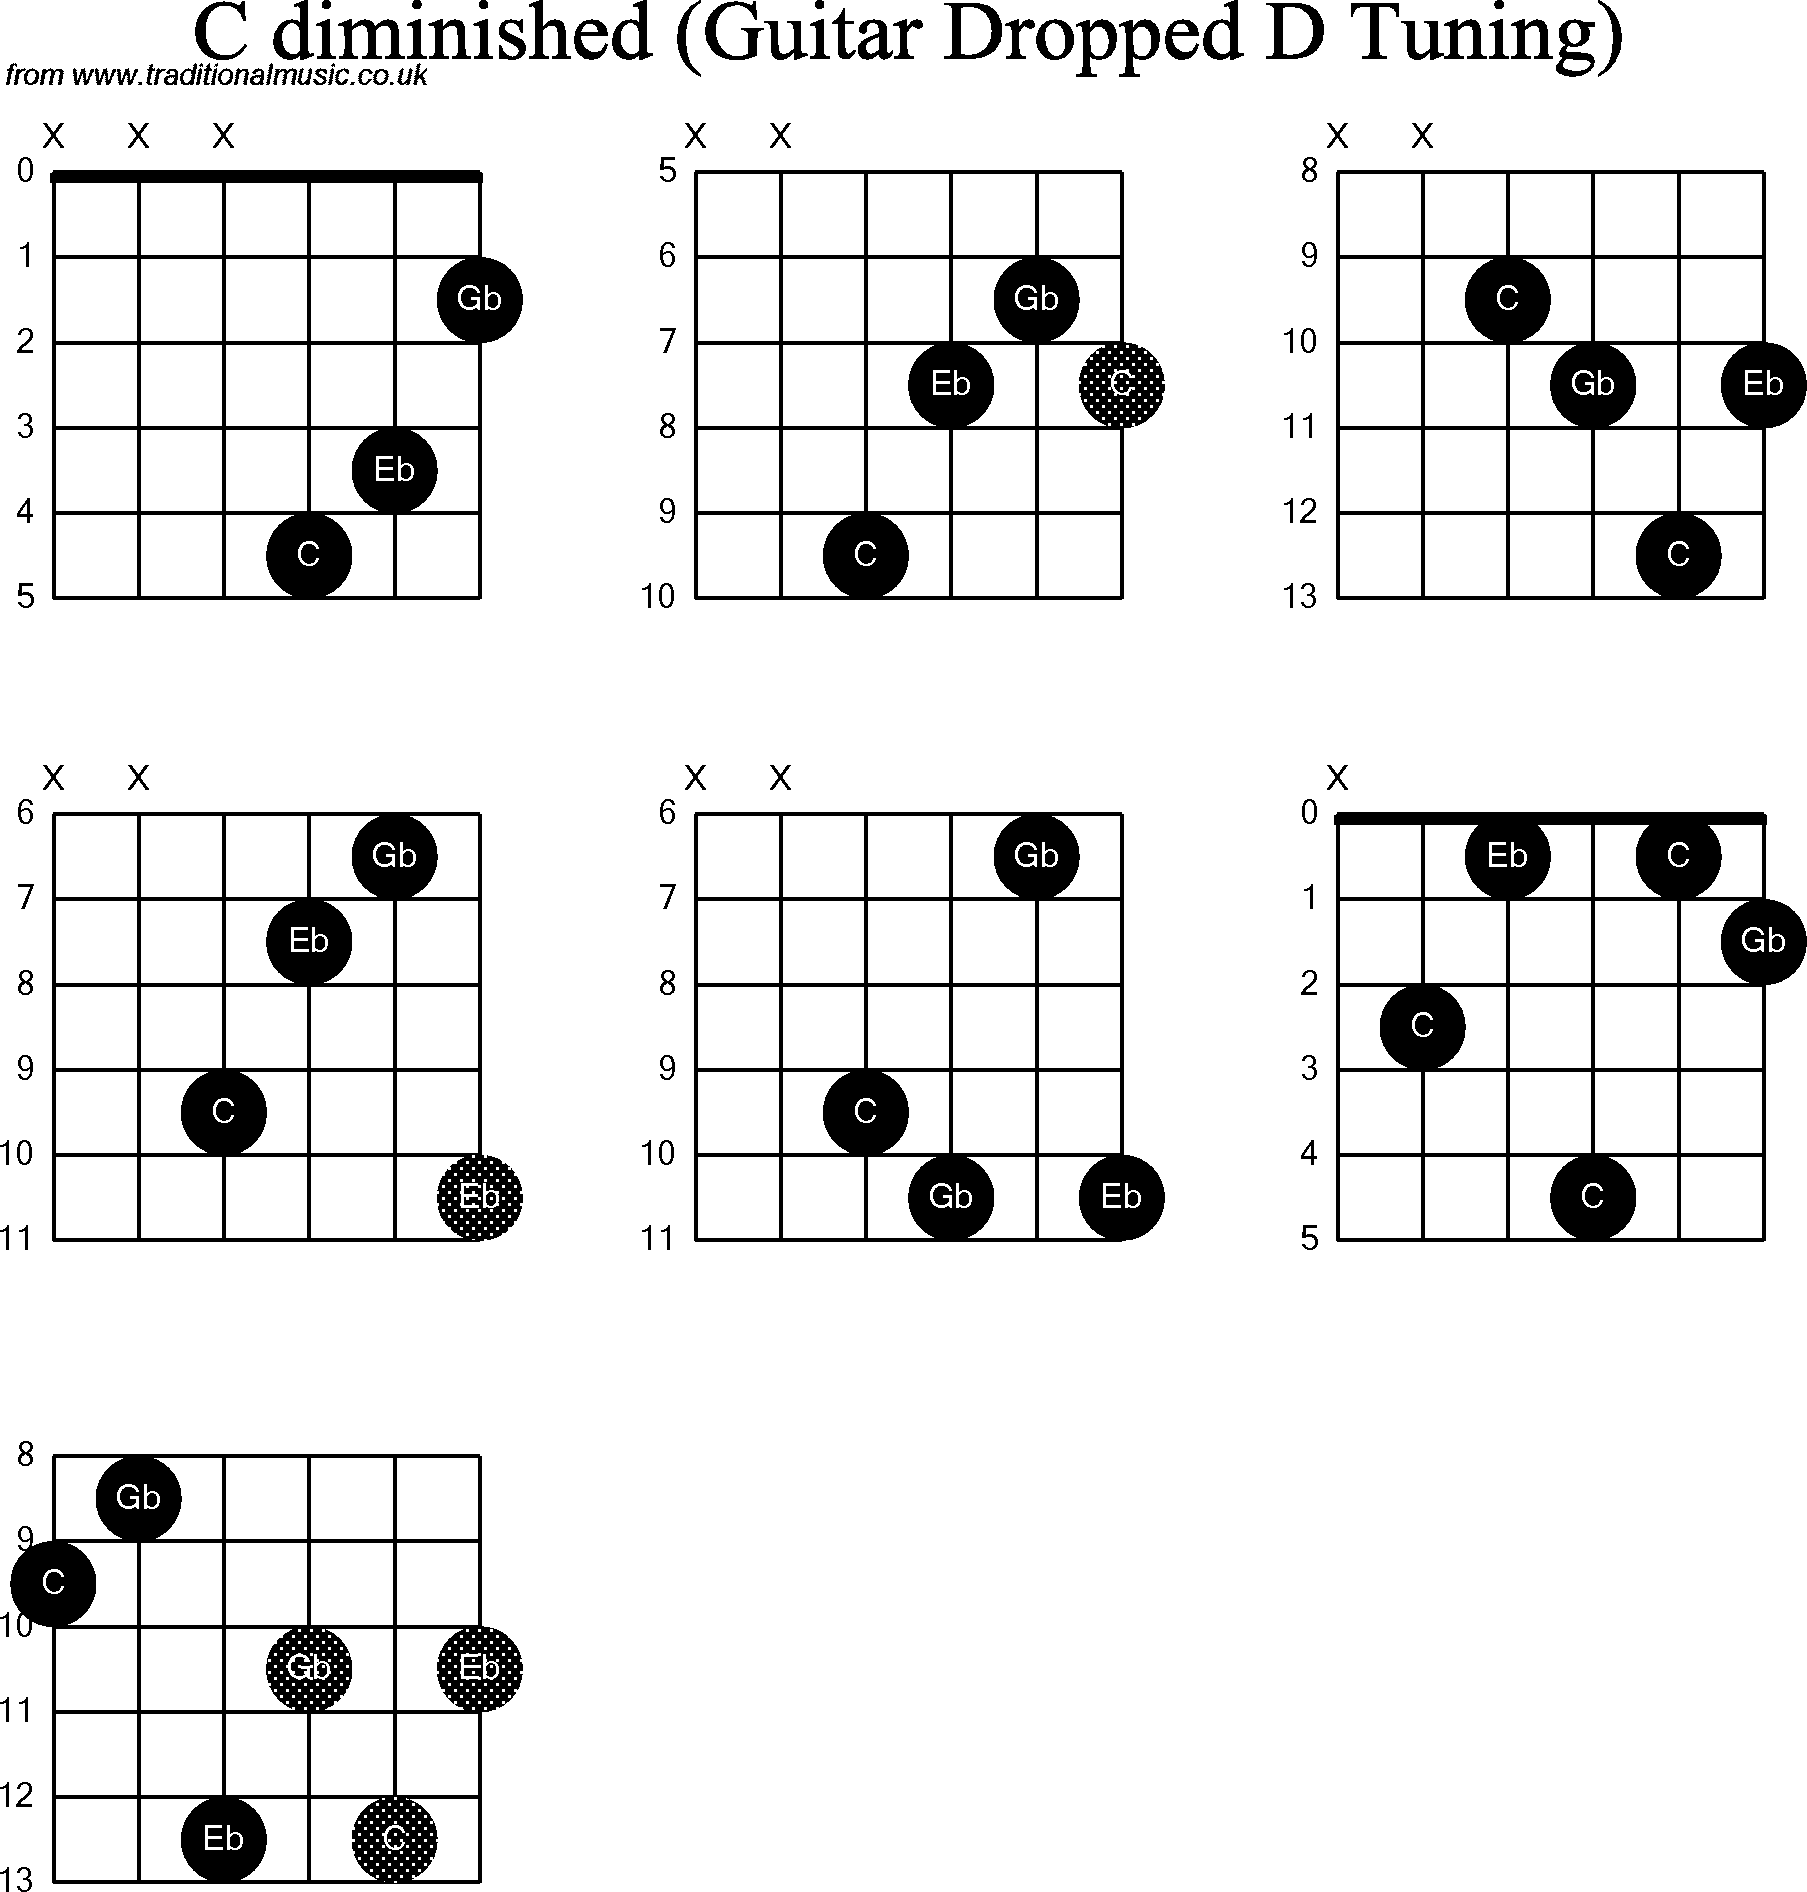 Chord diagrams for dropped d guitardadgbe c diminished chord diagrams for dropped d guitardadgbe c diminished hexwebz Choice Image